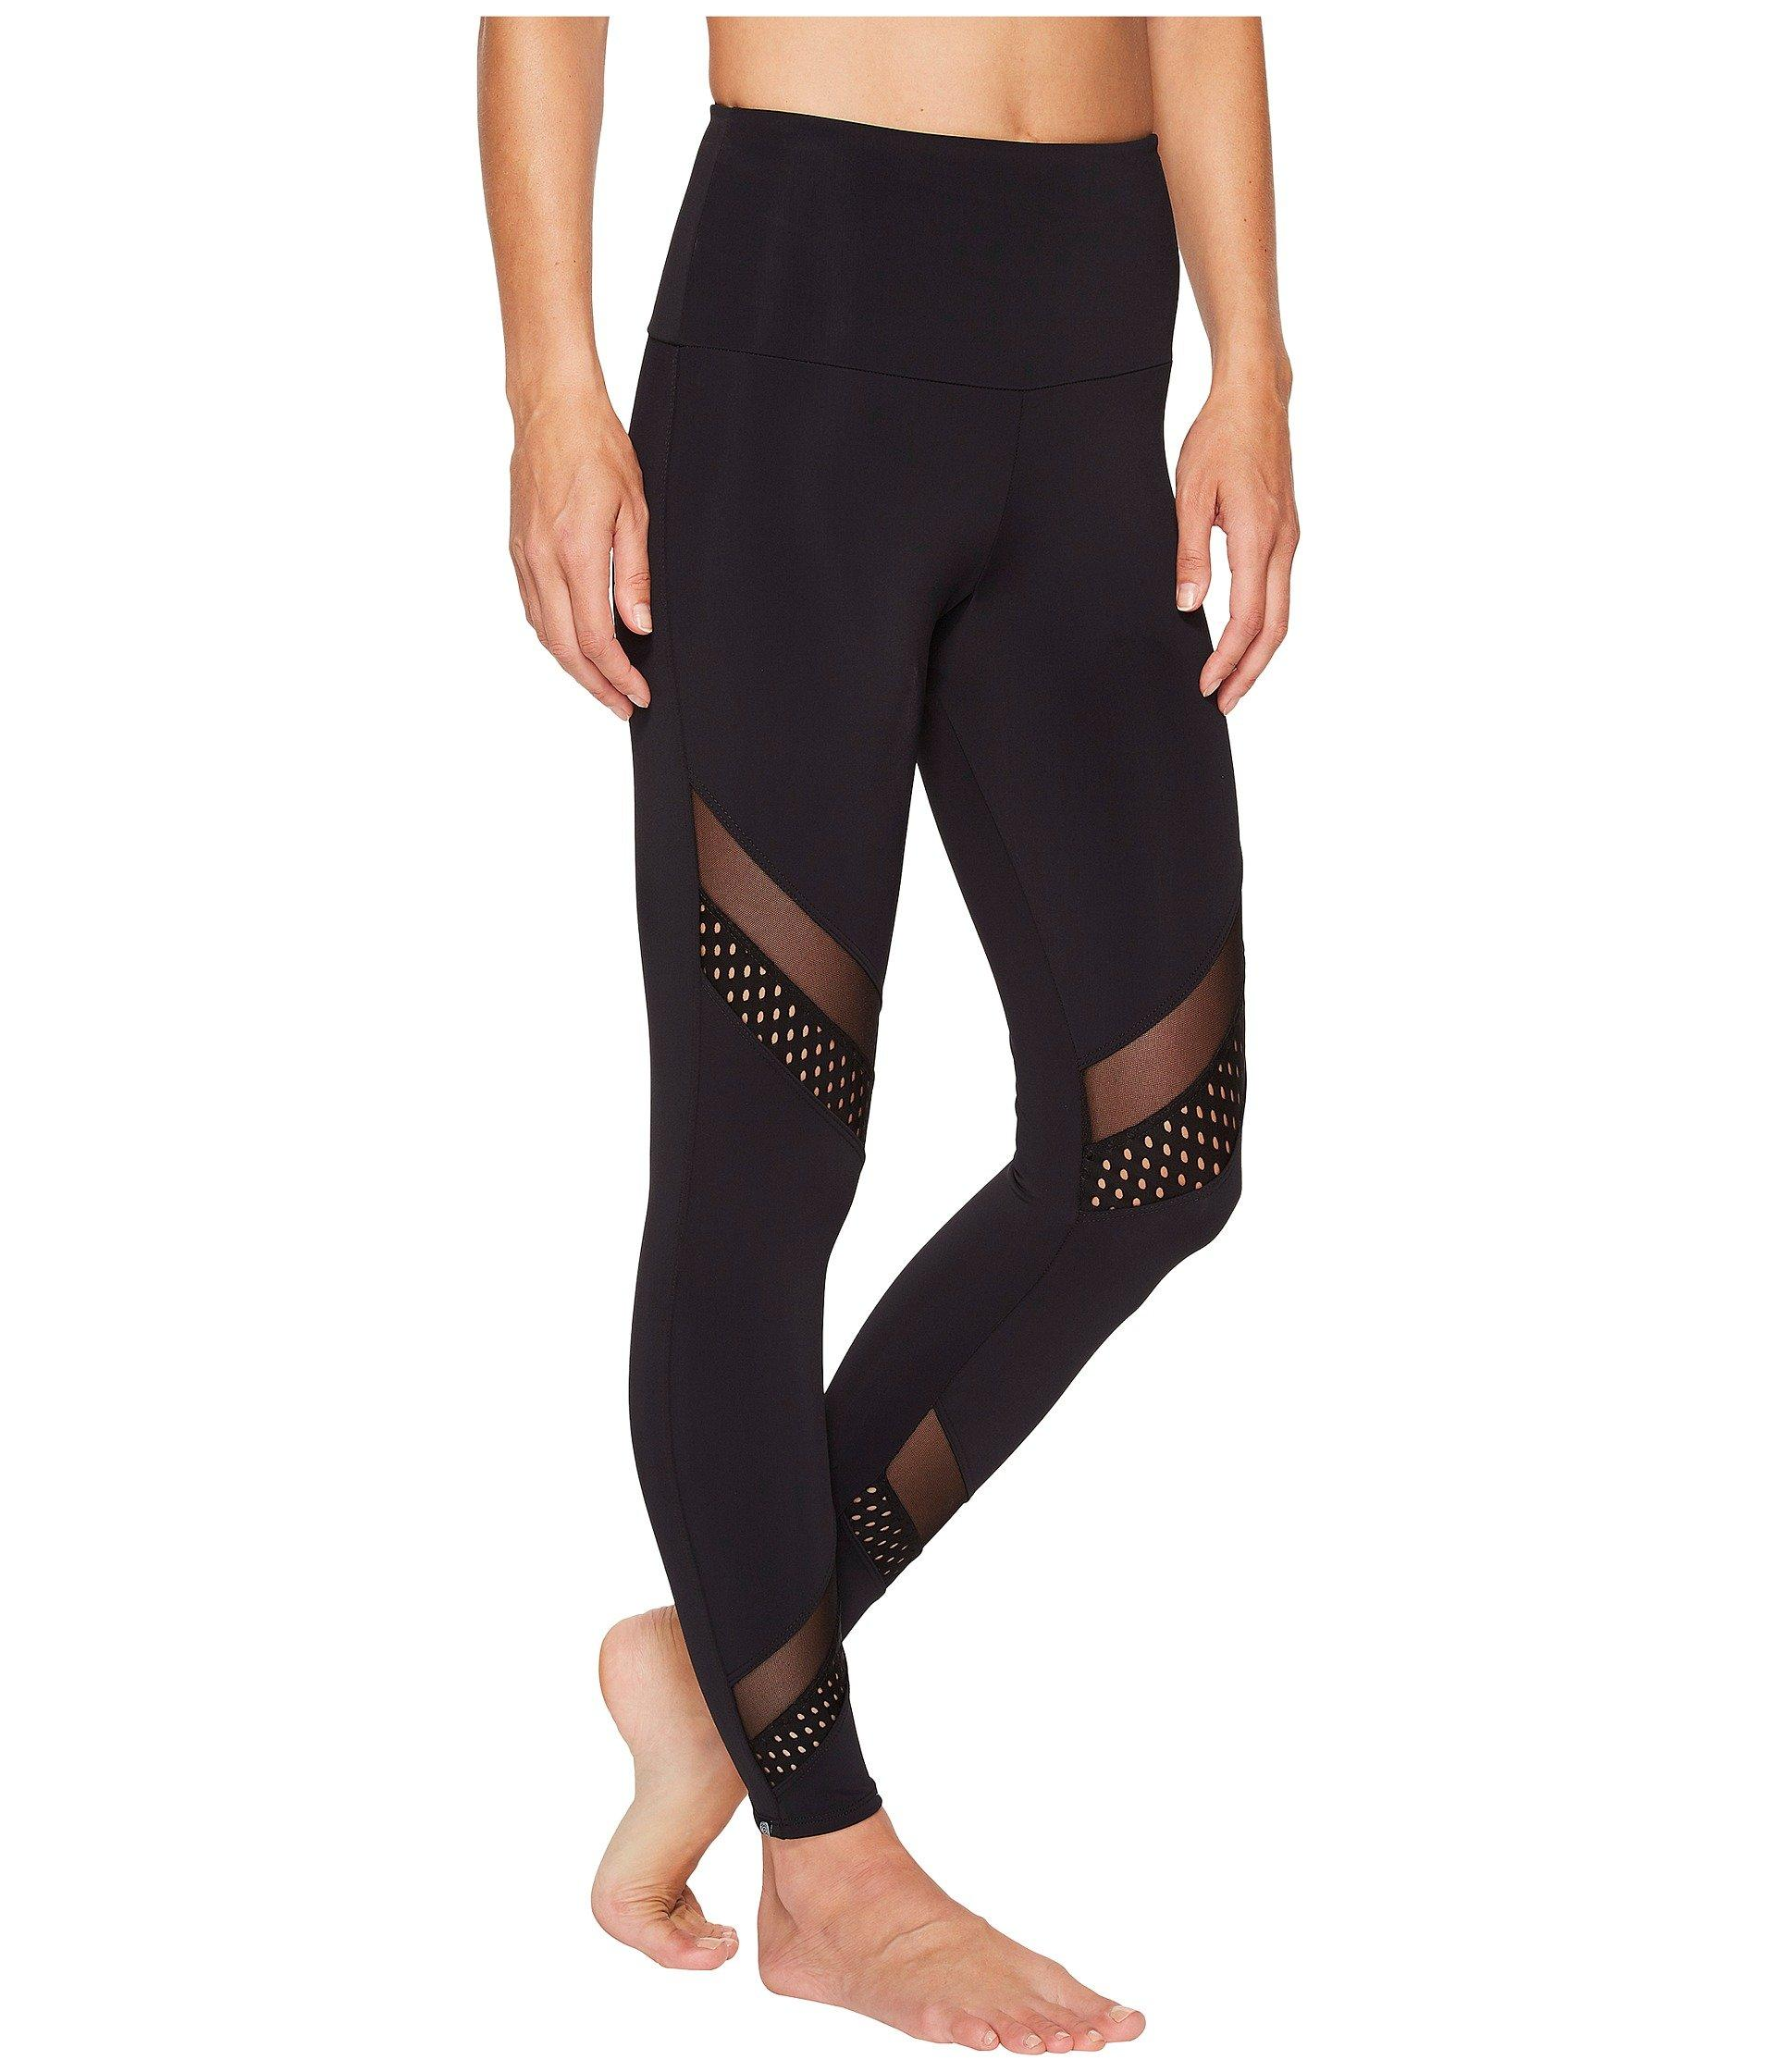 d0494373b5 Onzie Sporty Leggings in Black - Lyst